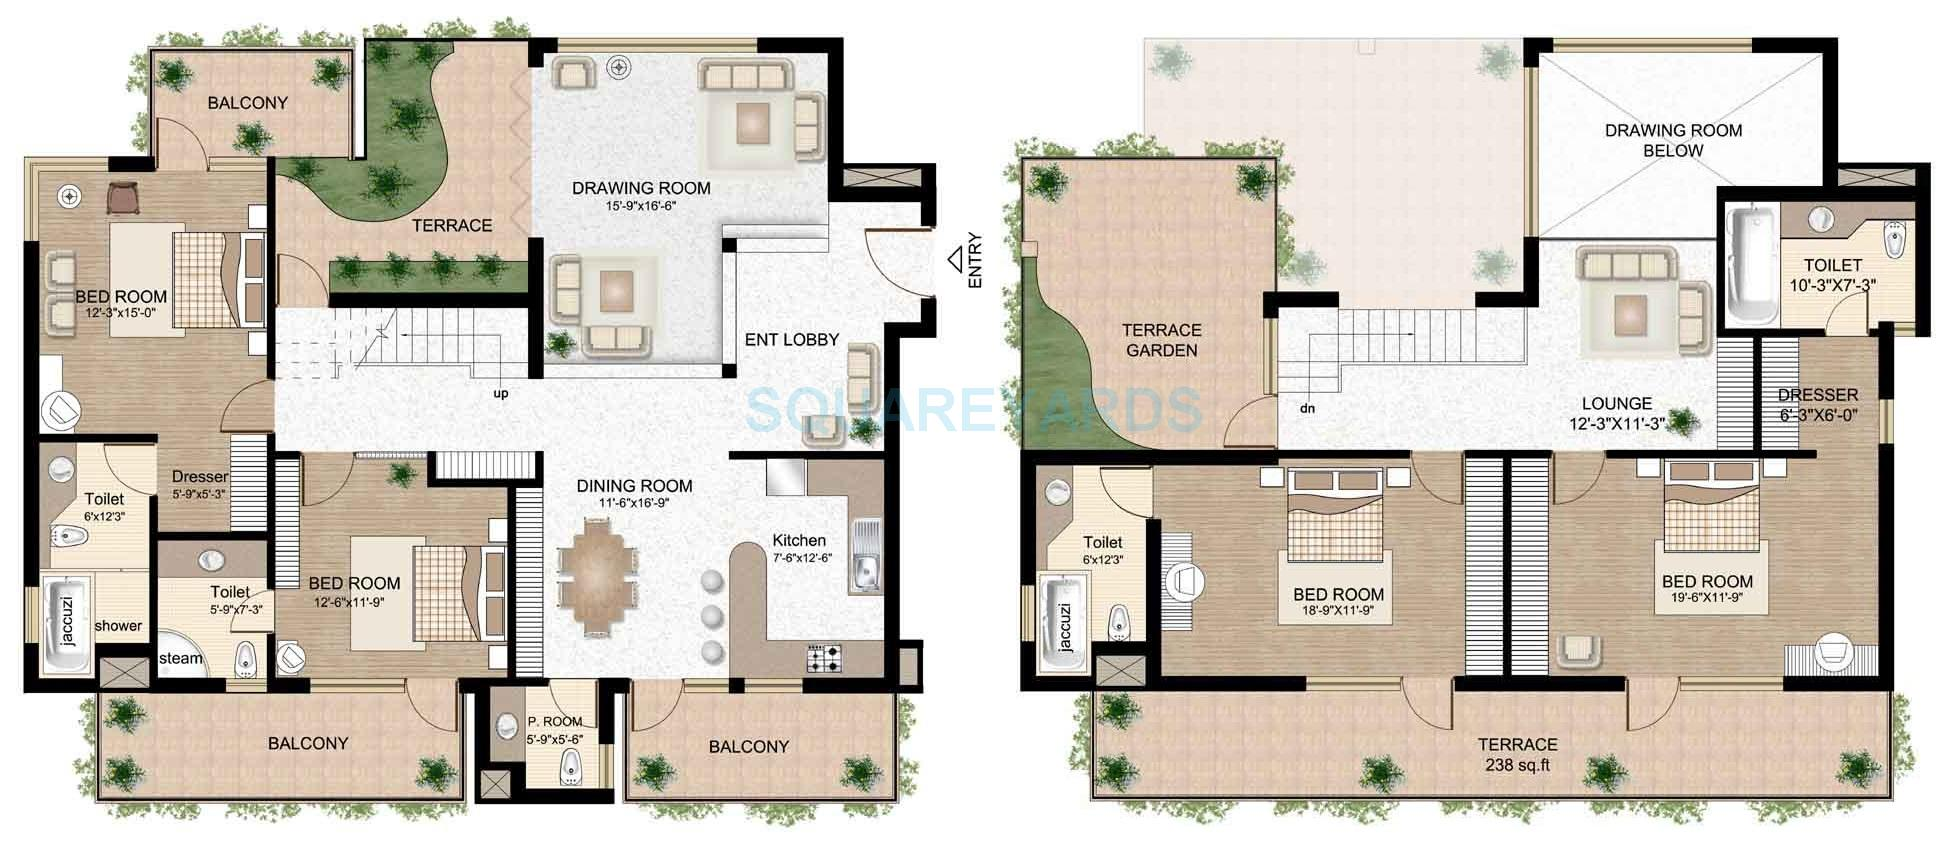 Raheja atlantis in sector 31 gurgaon project overview unit plans price trend - Lay outs penthouse ...